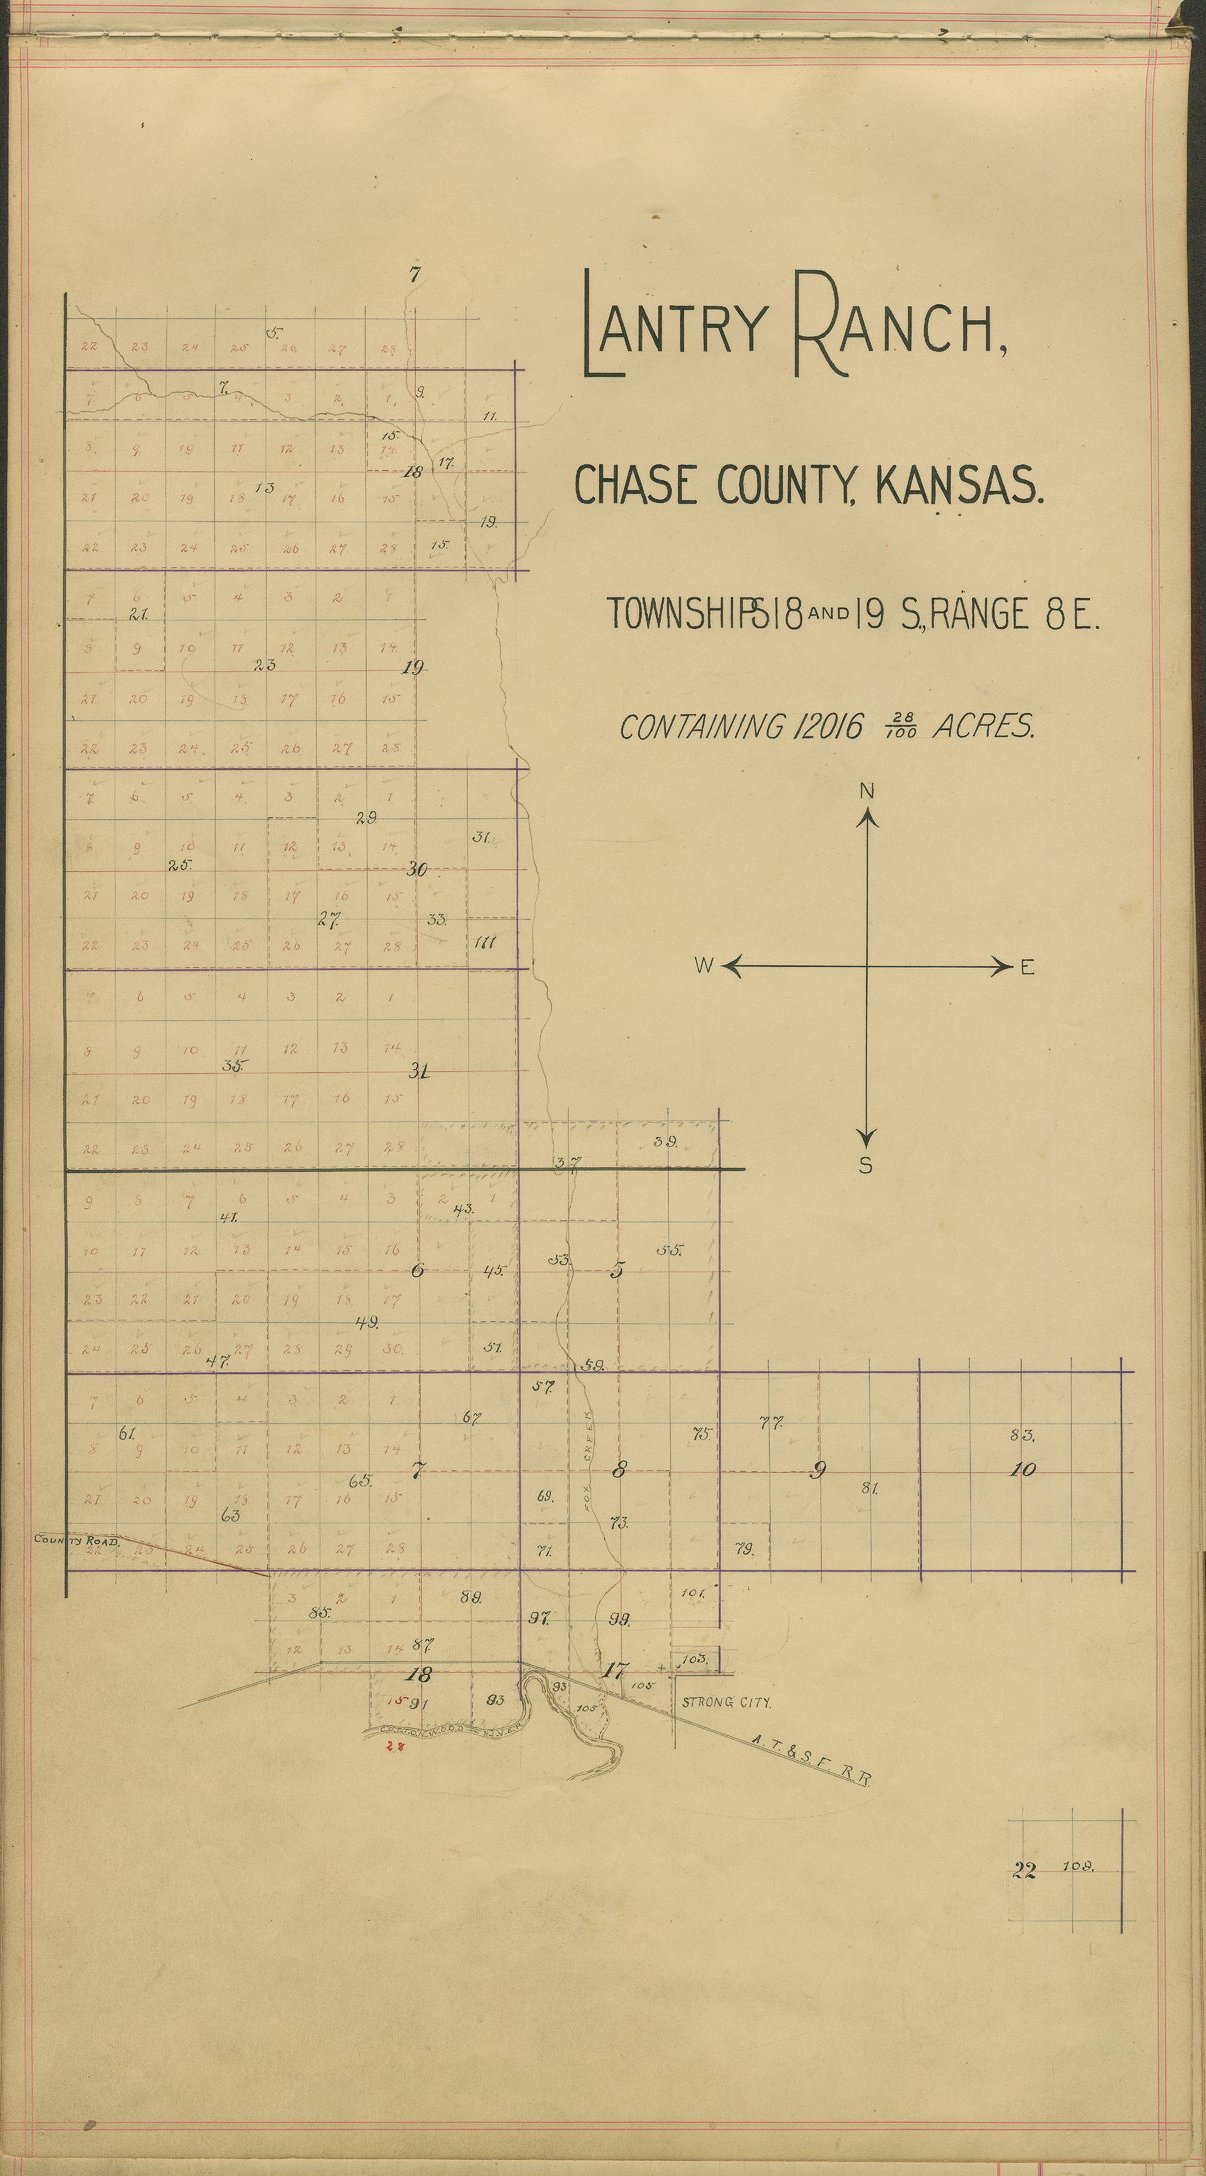 Abstract of the Lantry Ranch in Chase County, Kansas - Plat of Lantry Ranch